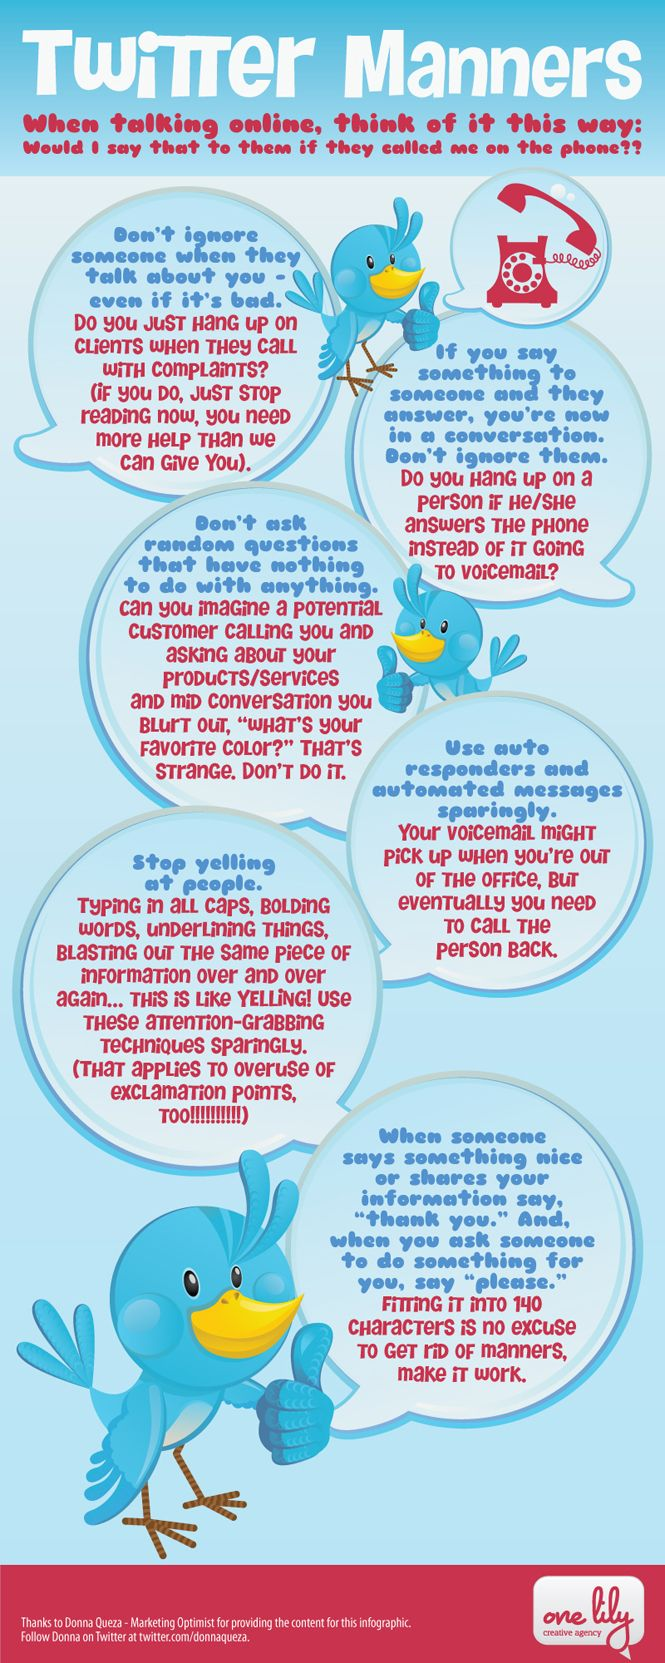 Twitter Manners! #Twitter